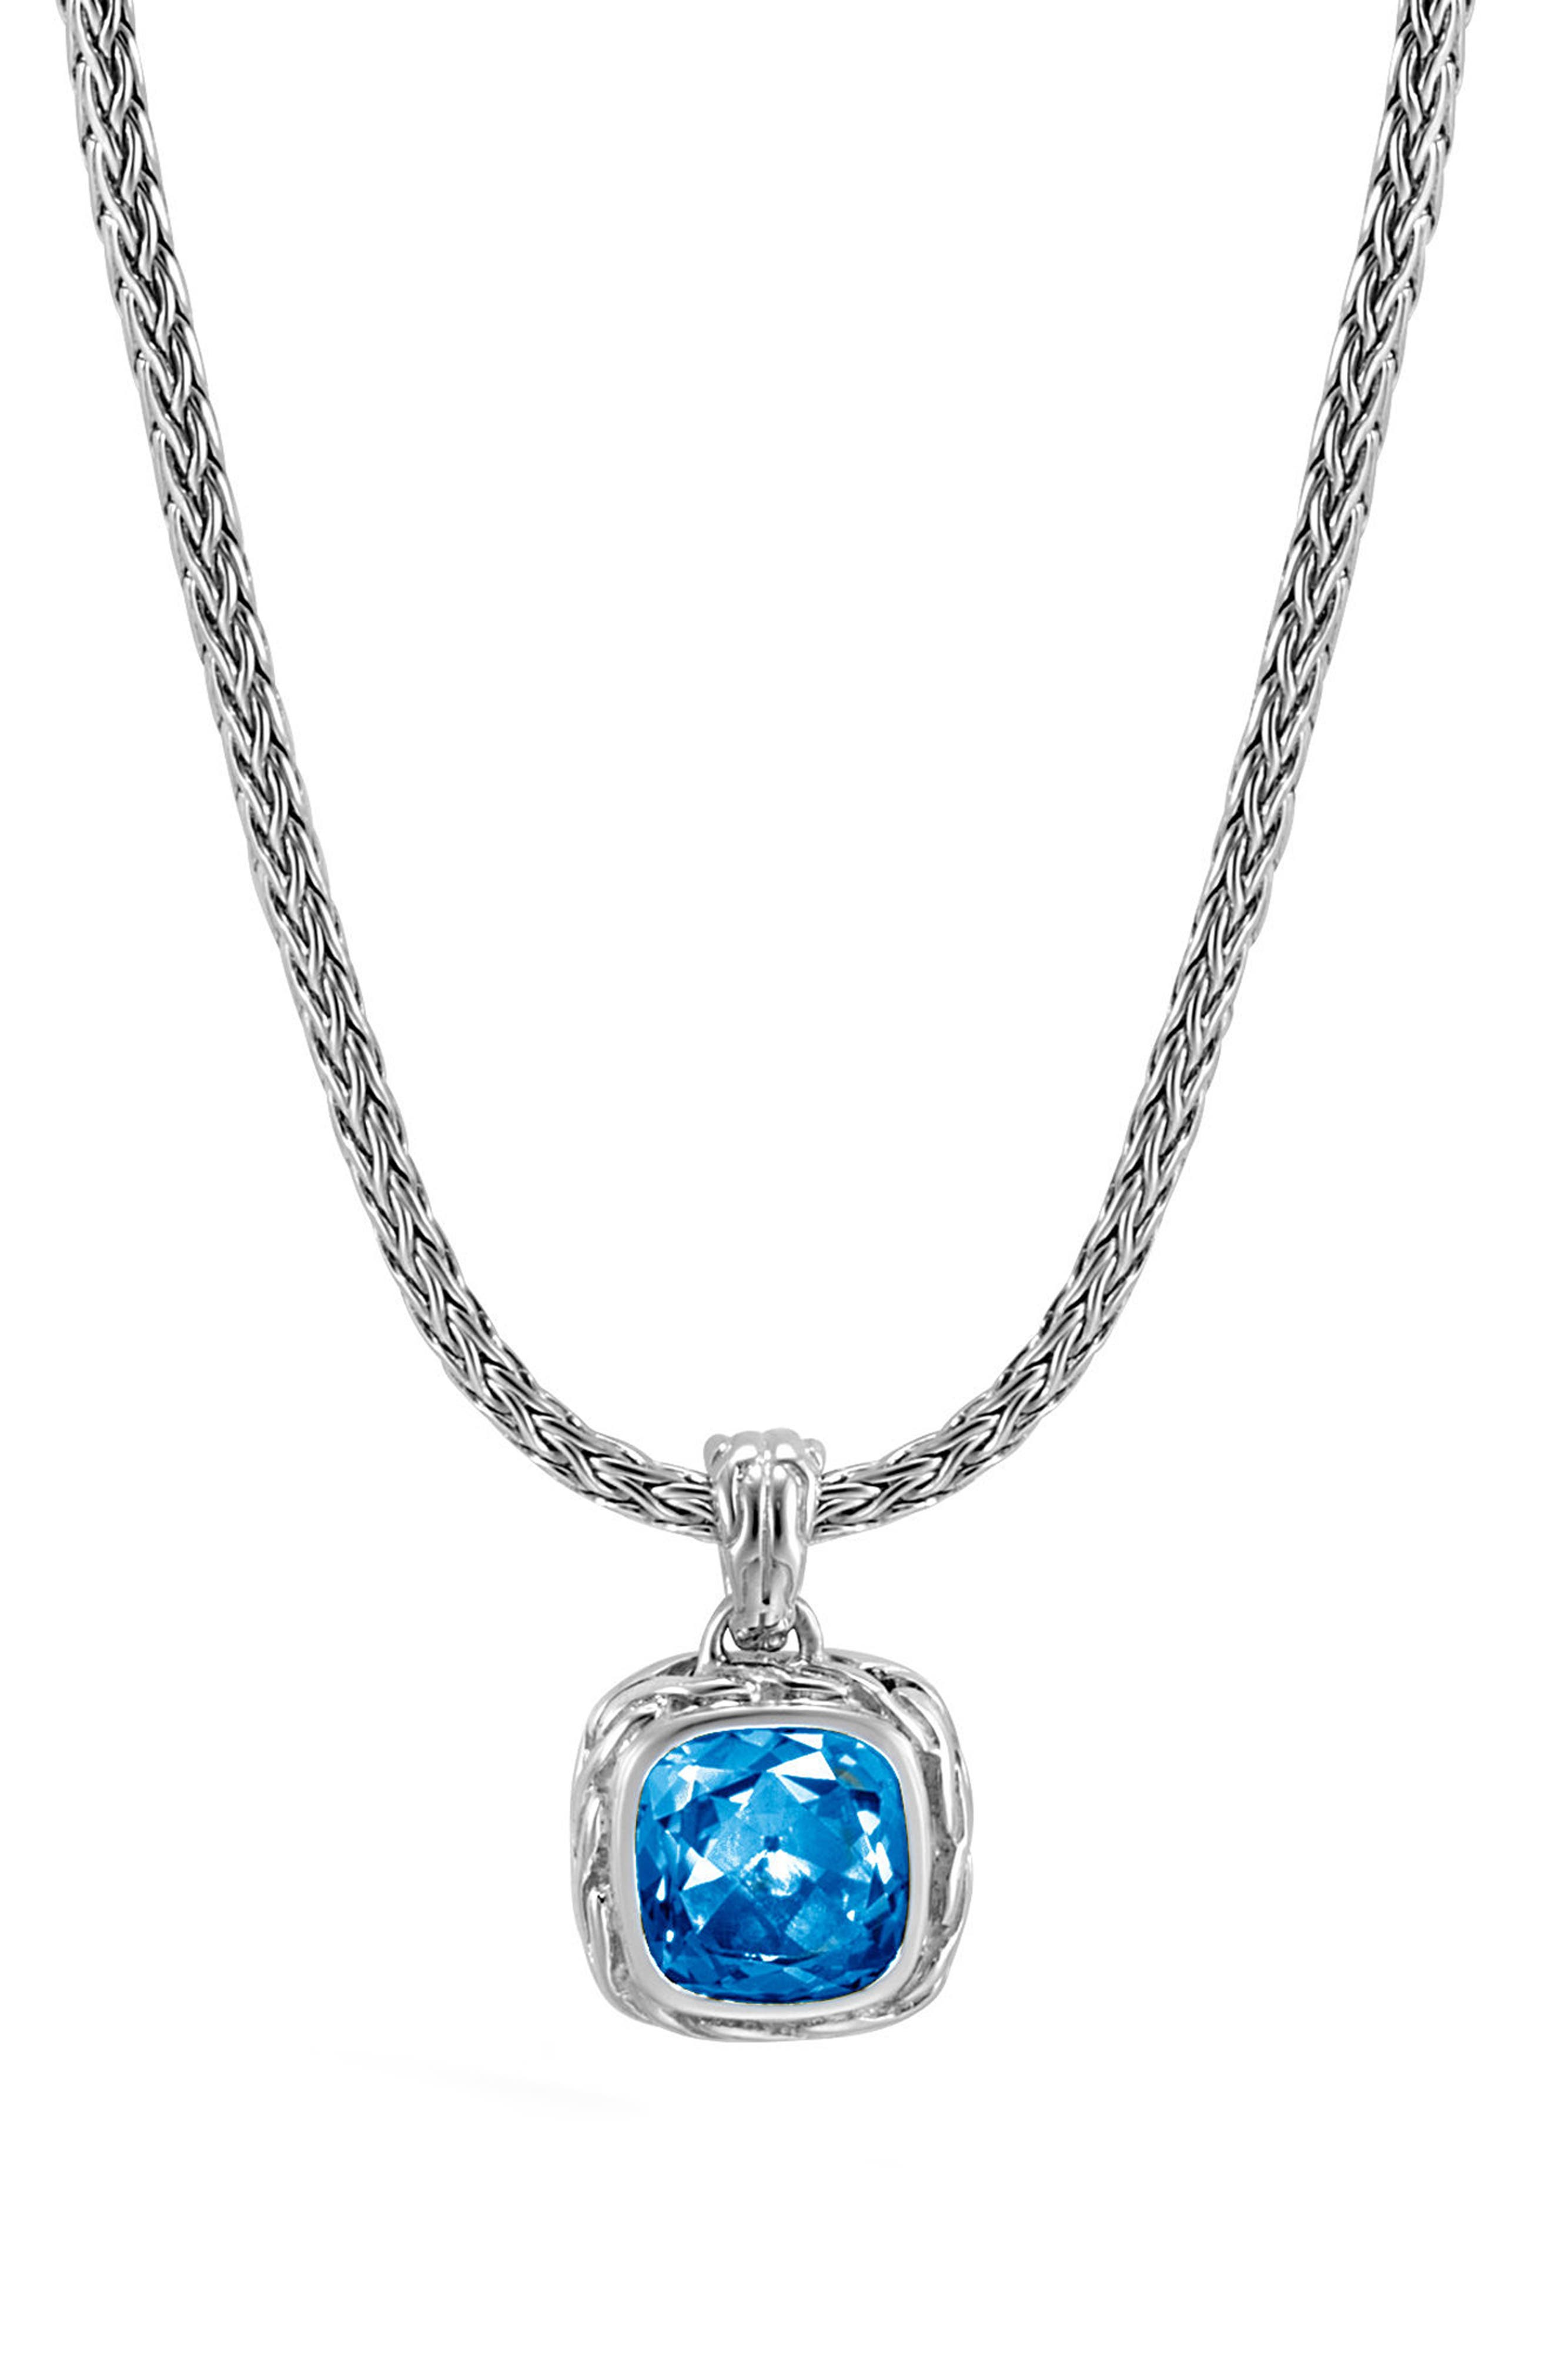 Magic Cut Blue Topaz Pendant Necklace,                         Main,                         color, SILVER/ LONDON BLUE TOPAZ